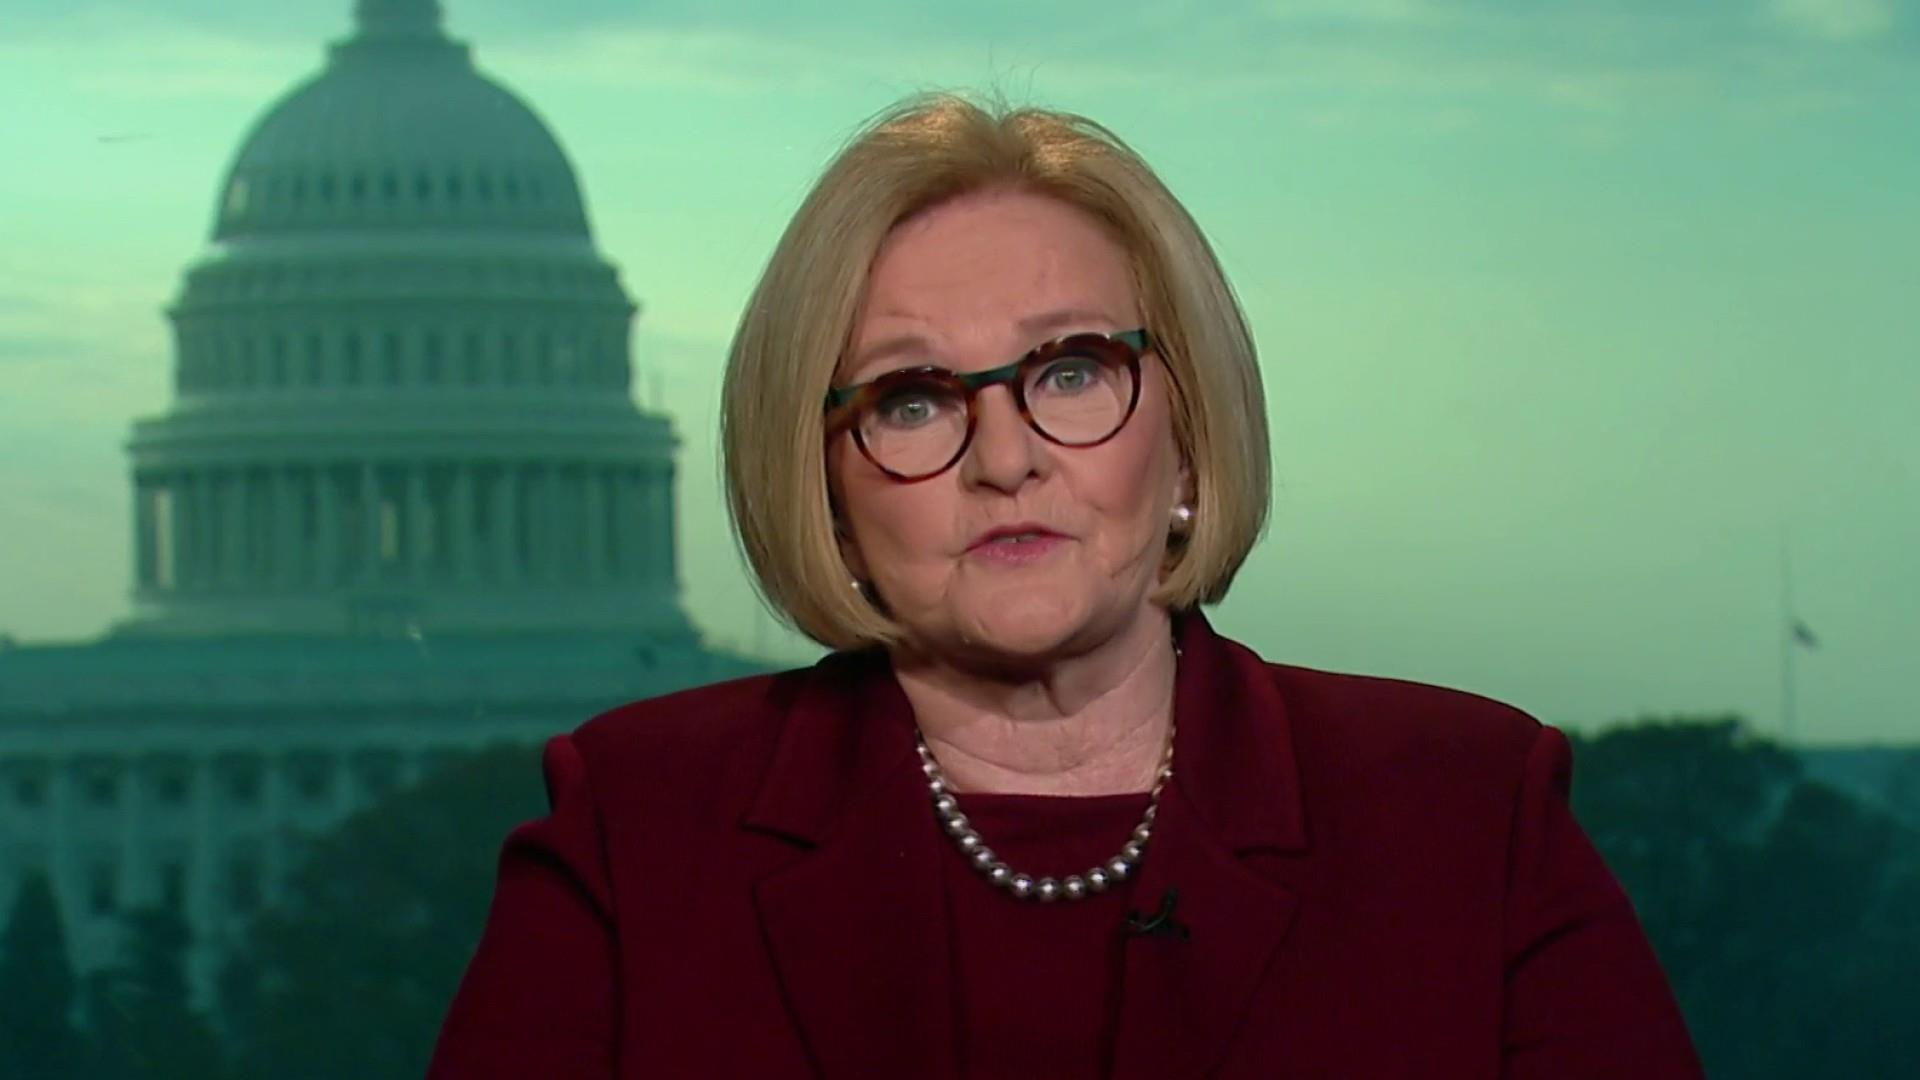 Leaving office, Sen. McCaskill weighs in on Trump and 2020